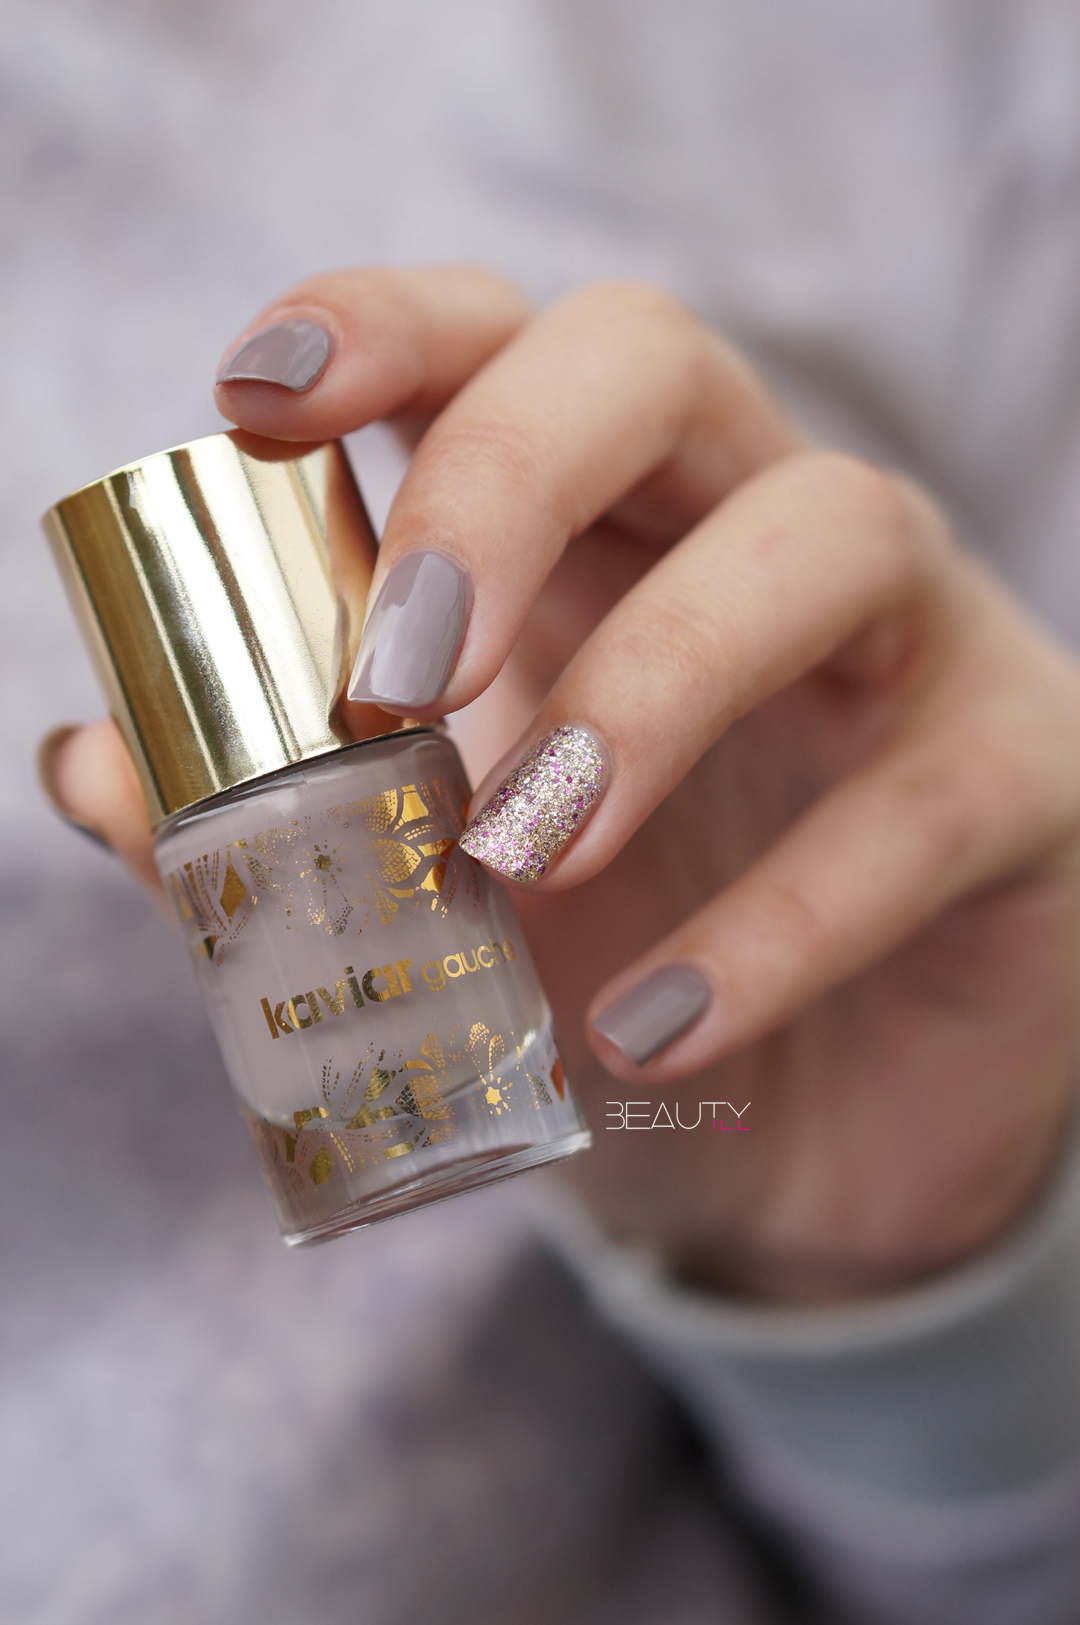 notd-catrice-kaviar-gauche-C04-Cool-Wonder-golden-rose-galaxy-nail-color-18 (1)